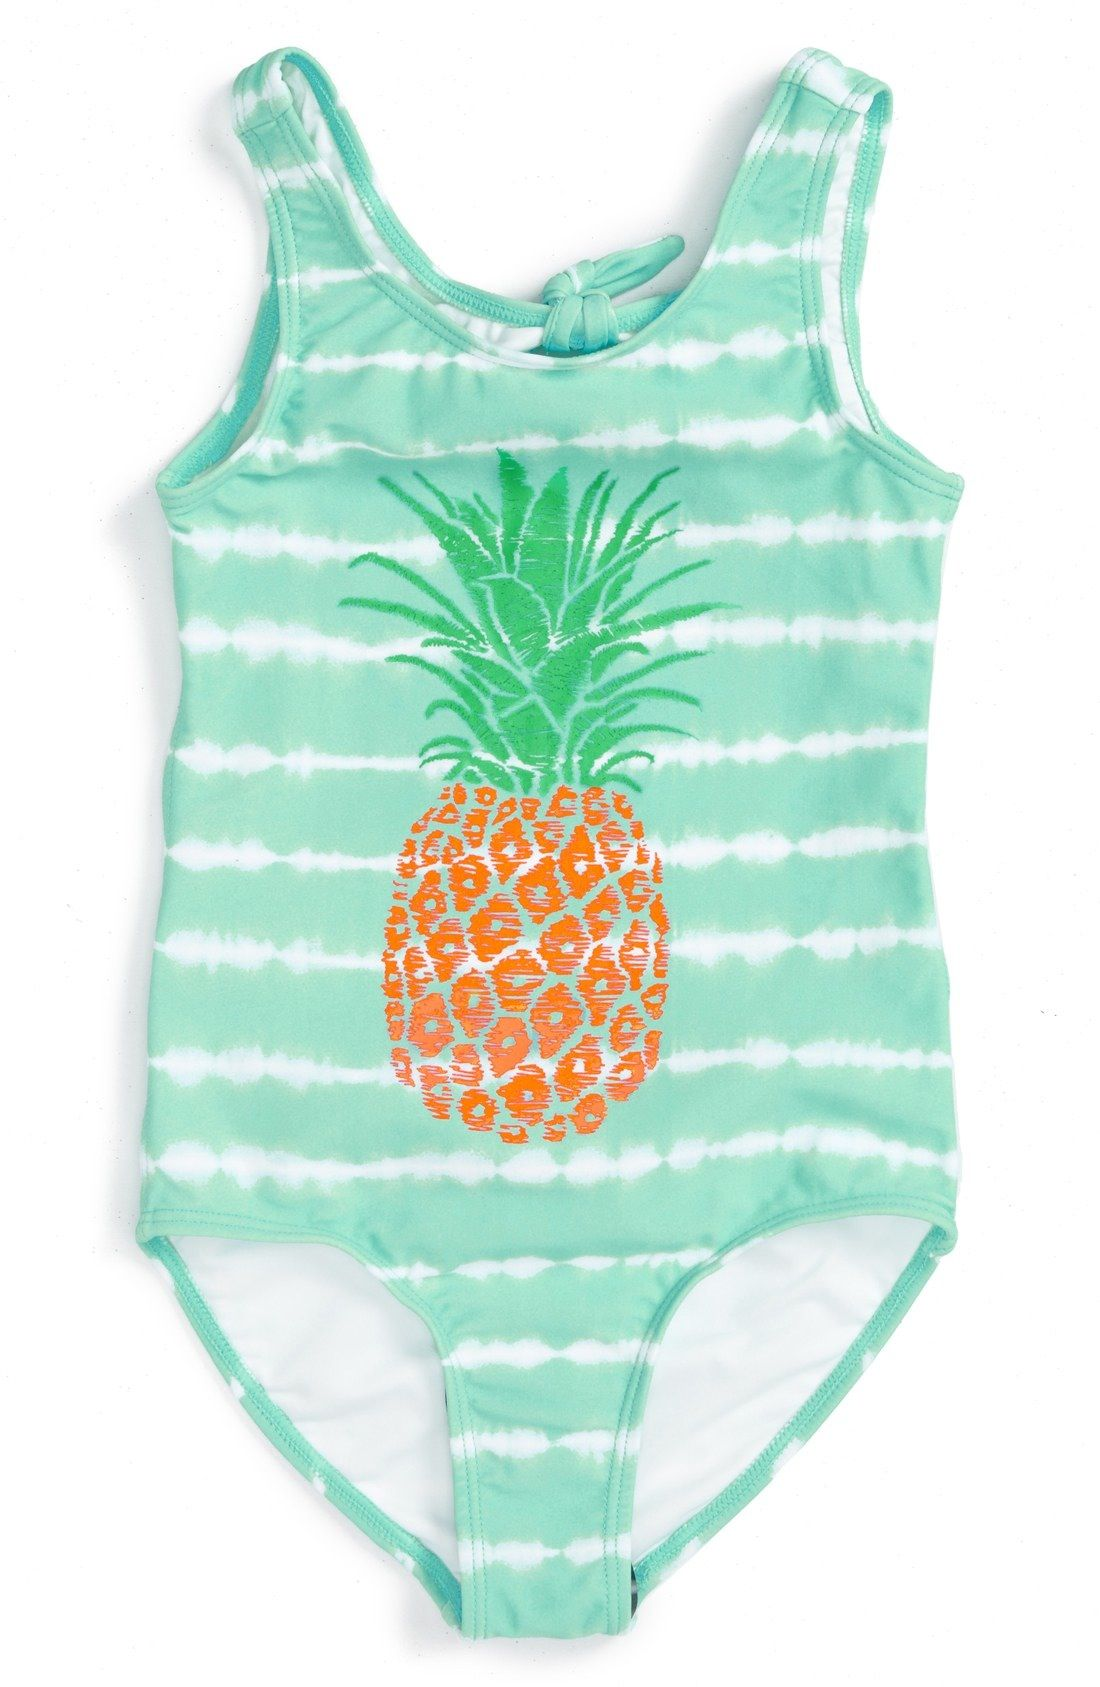 af8dafec5 The sweetest pineapple swimsuit! The sweetest pineapple swimsuit! Toddler  Swimsuits, Big Girl Swimsuits, Girls One Piece Swimsuit